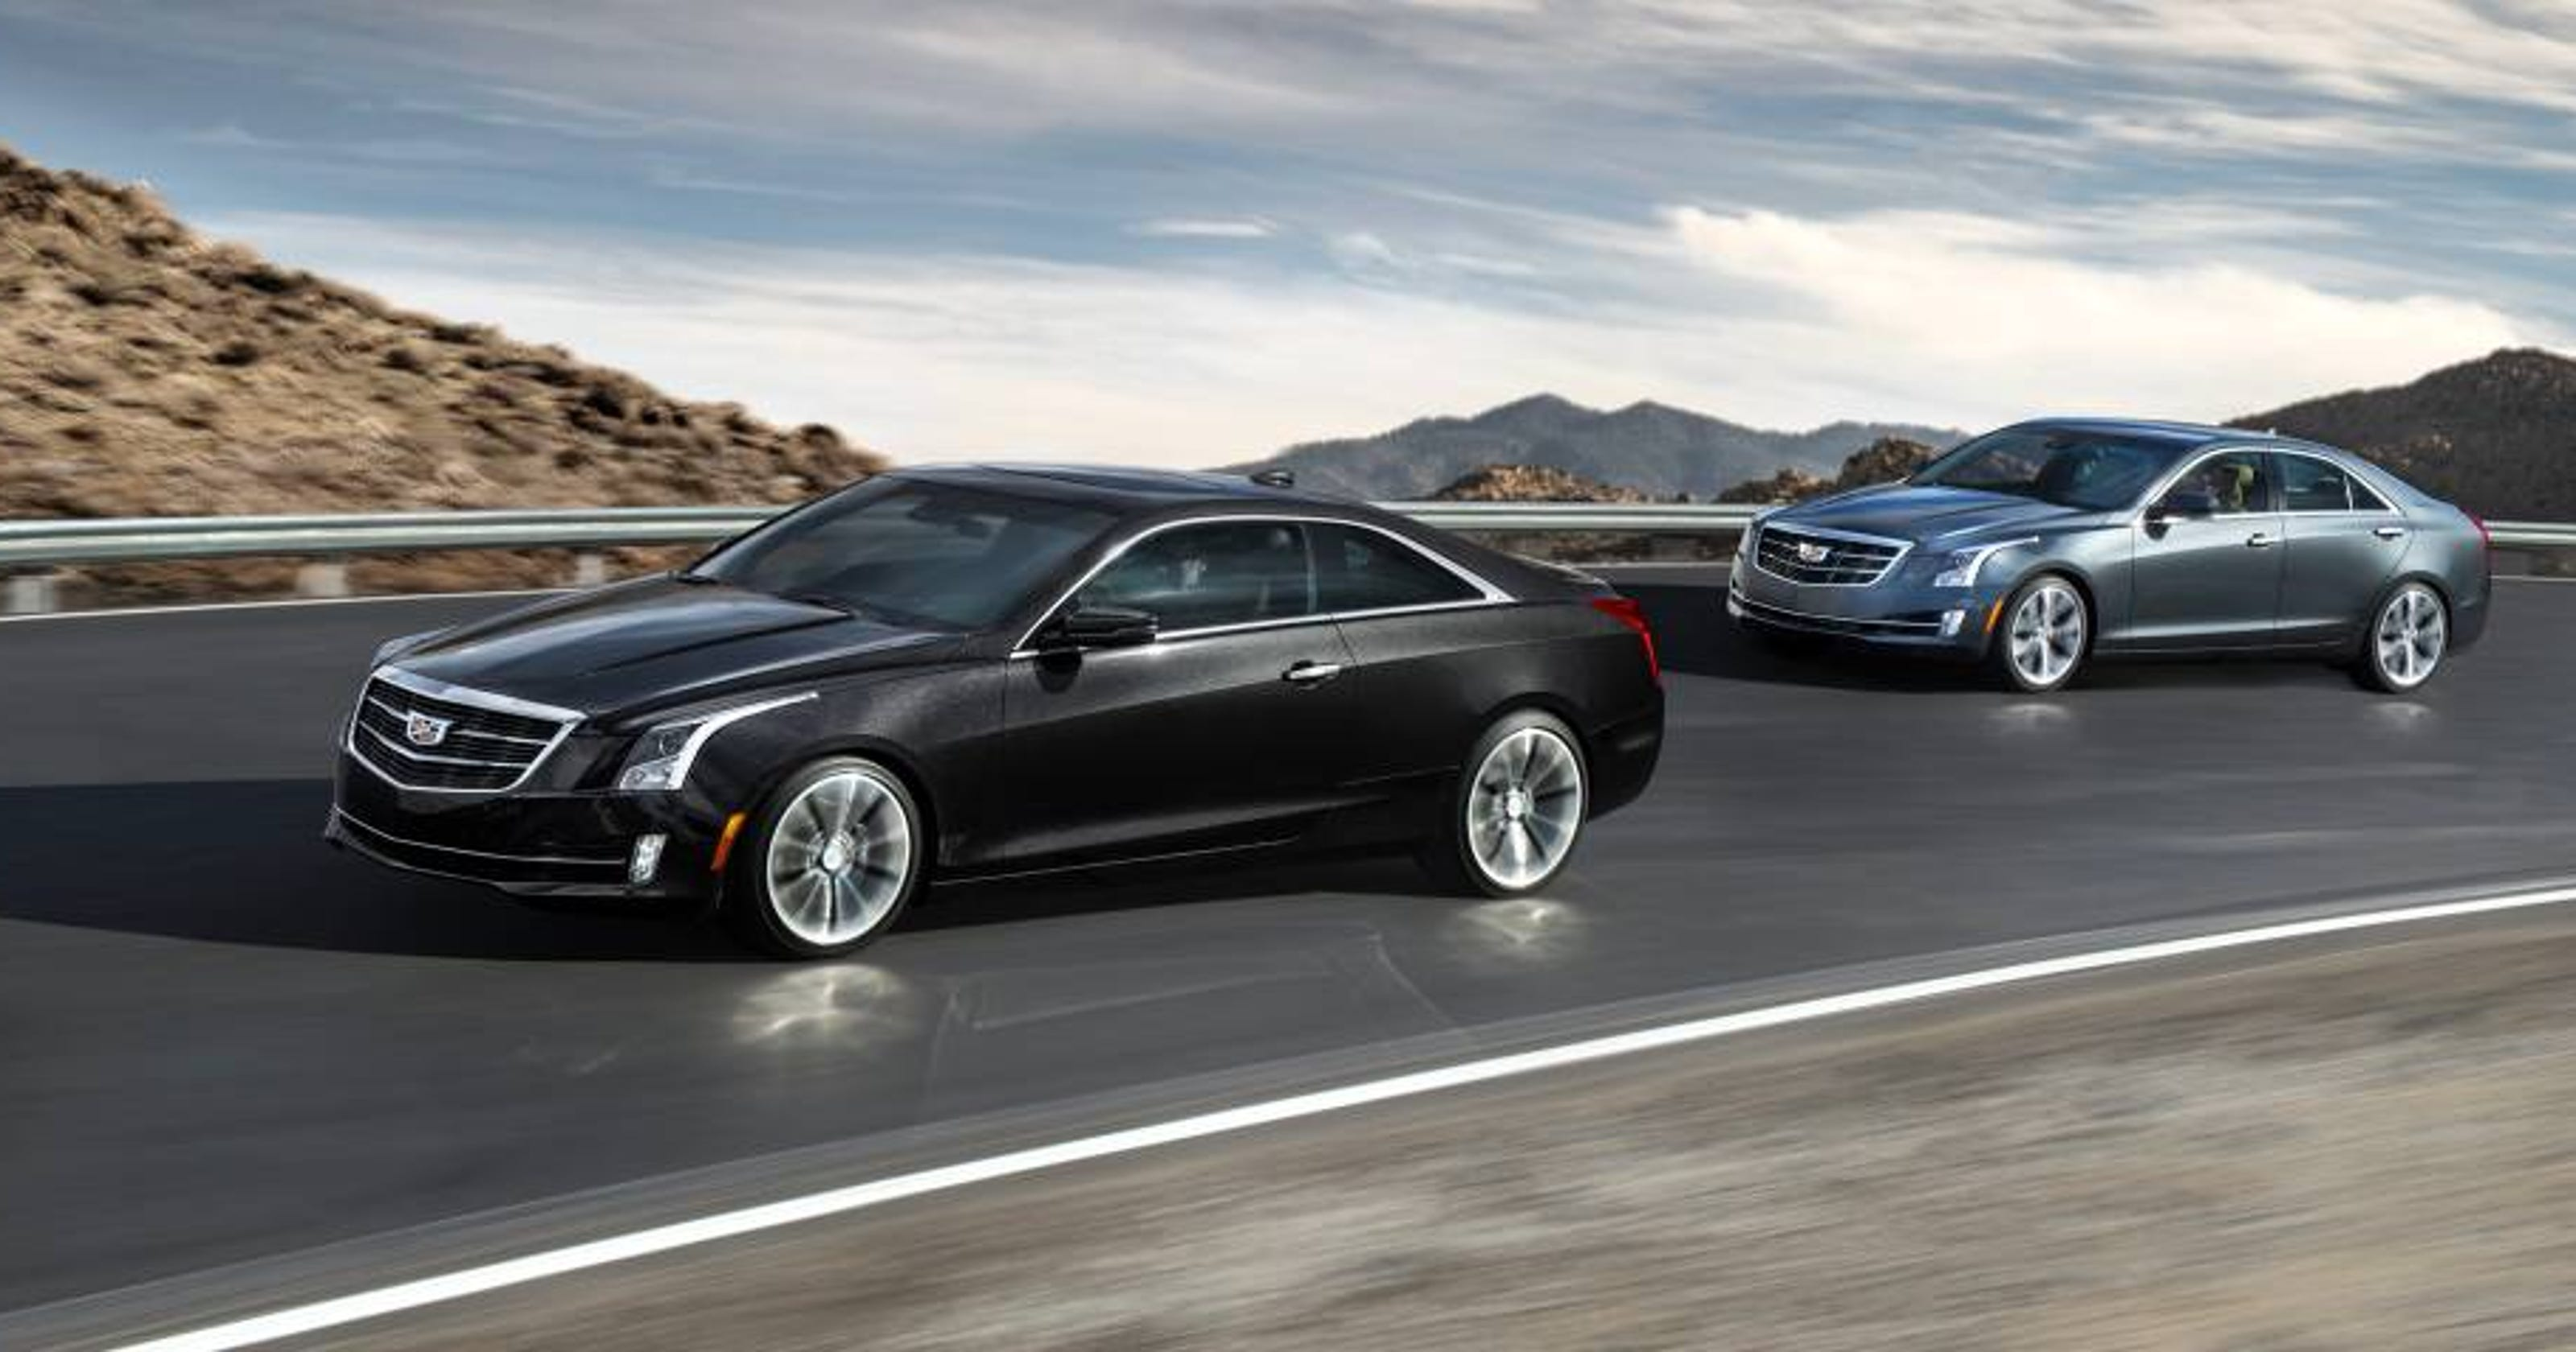 Cadillac ATS: New trim levels and packaging for 2017